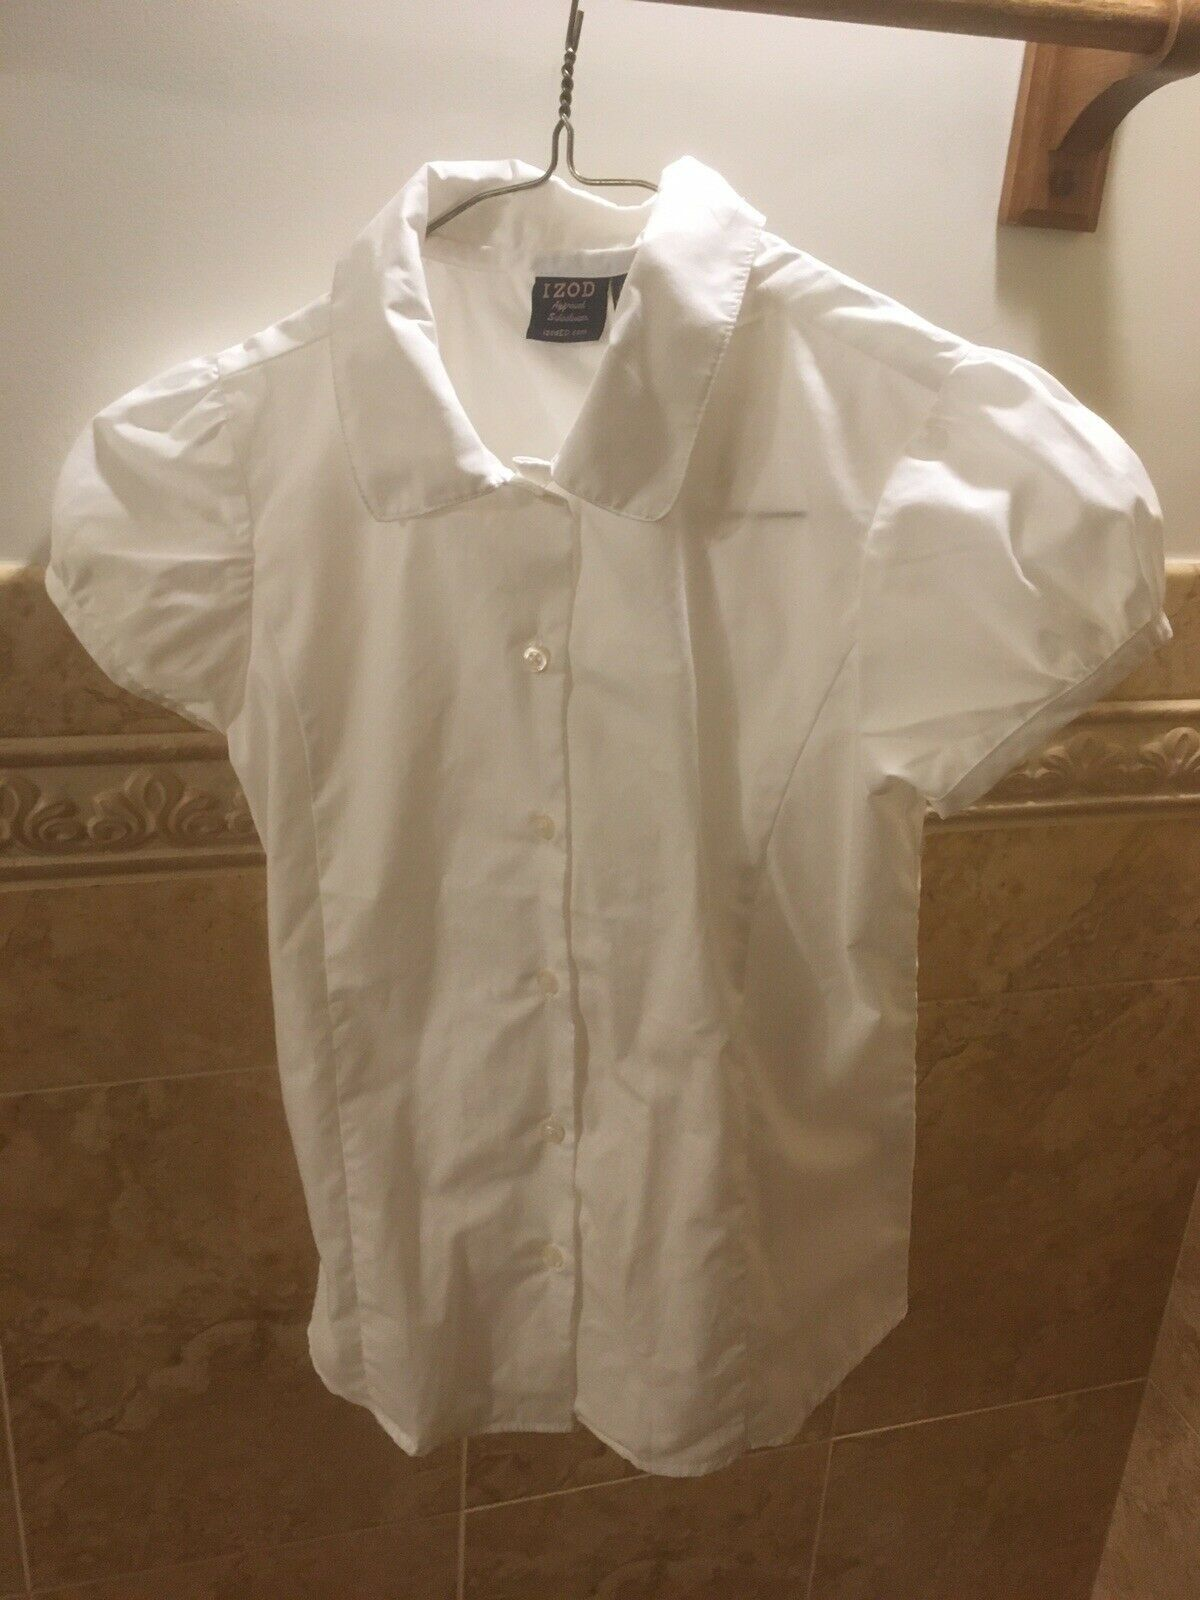 Primary image for NWOT Izod Approved Schoolwear Uniform White SS Button Down Shirt Girls Large 10